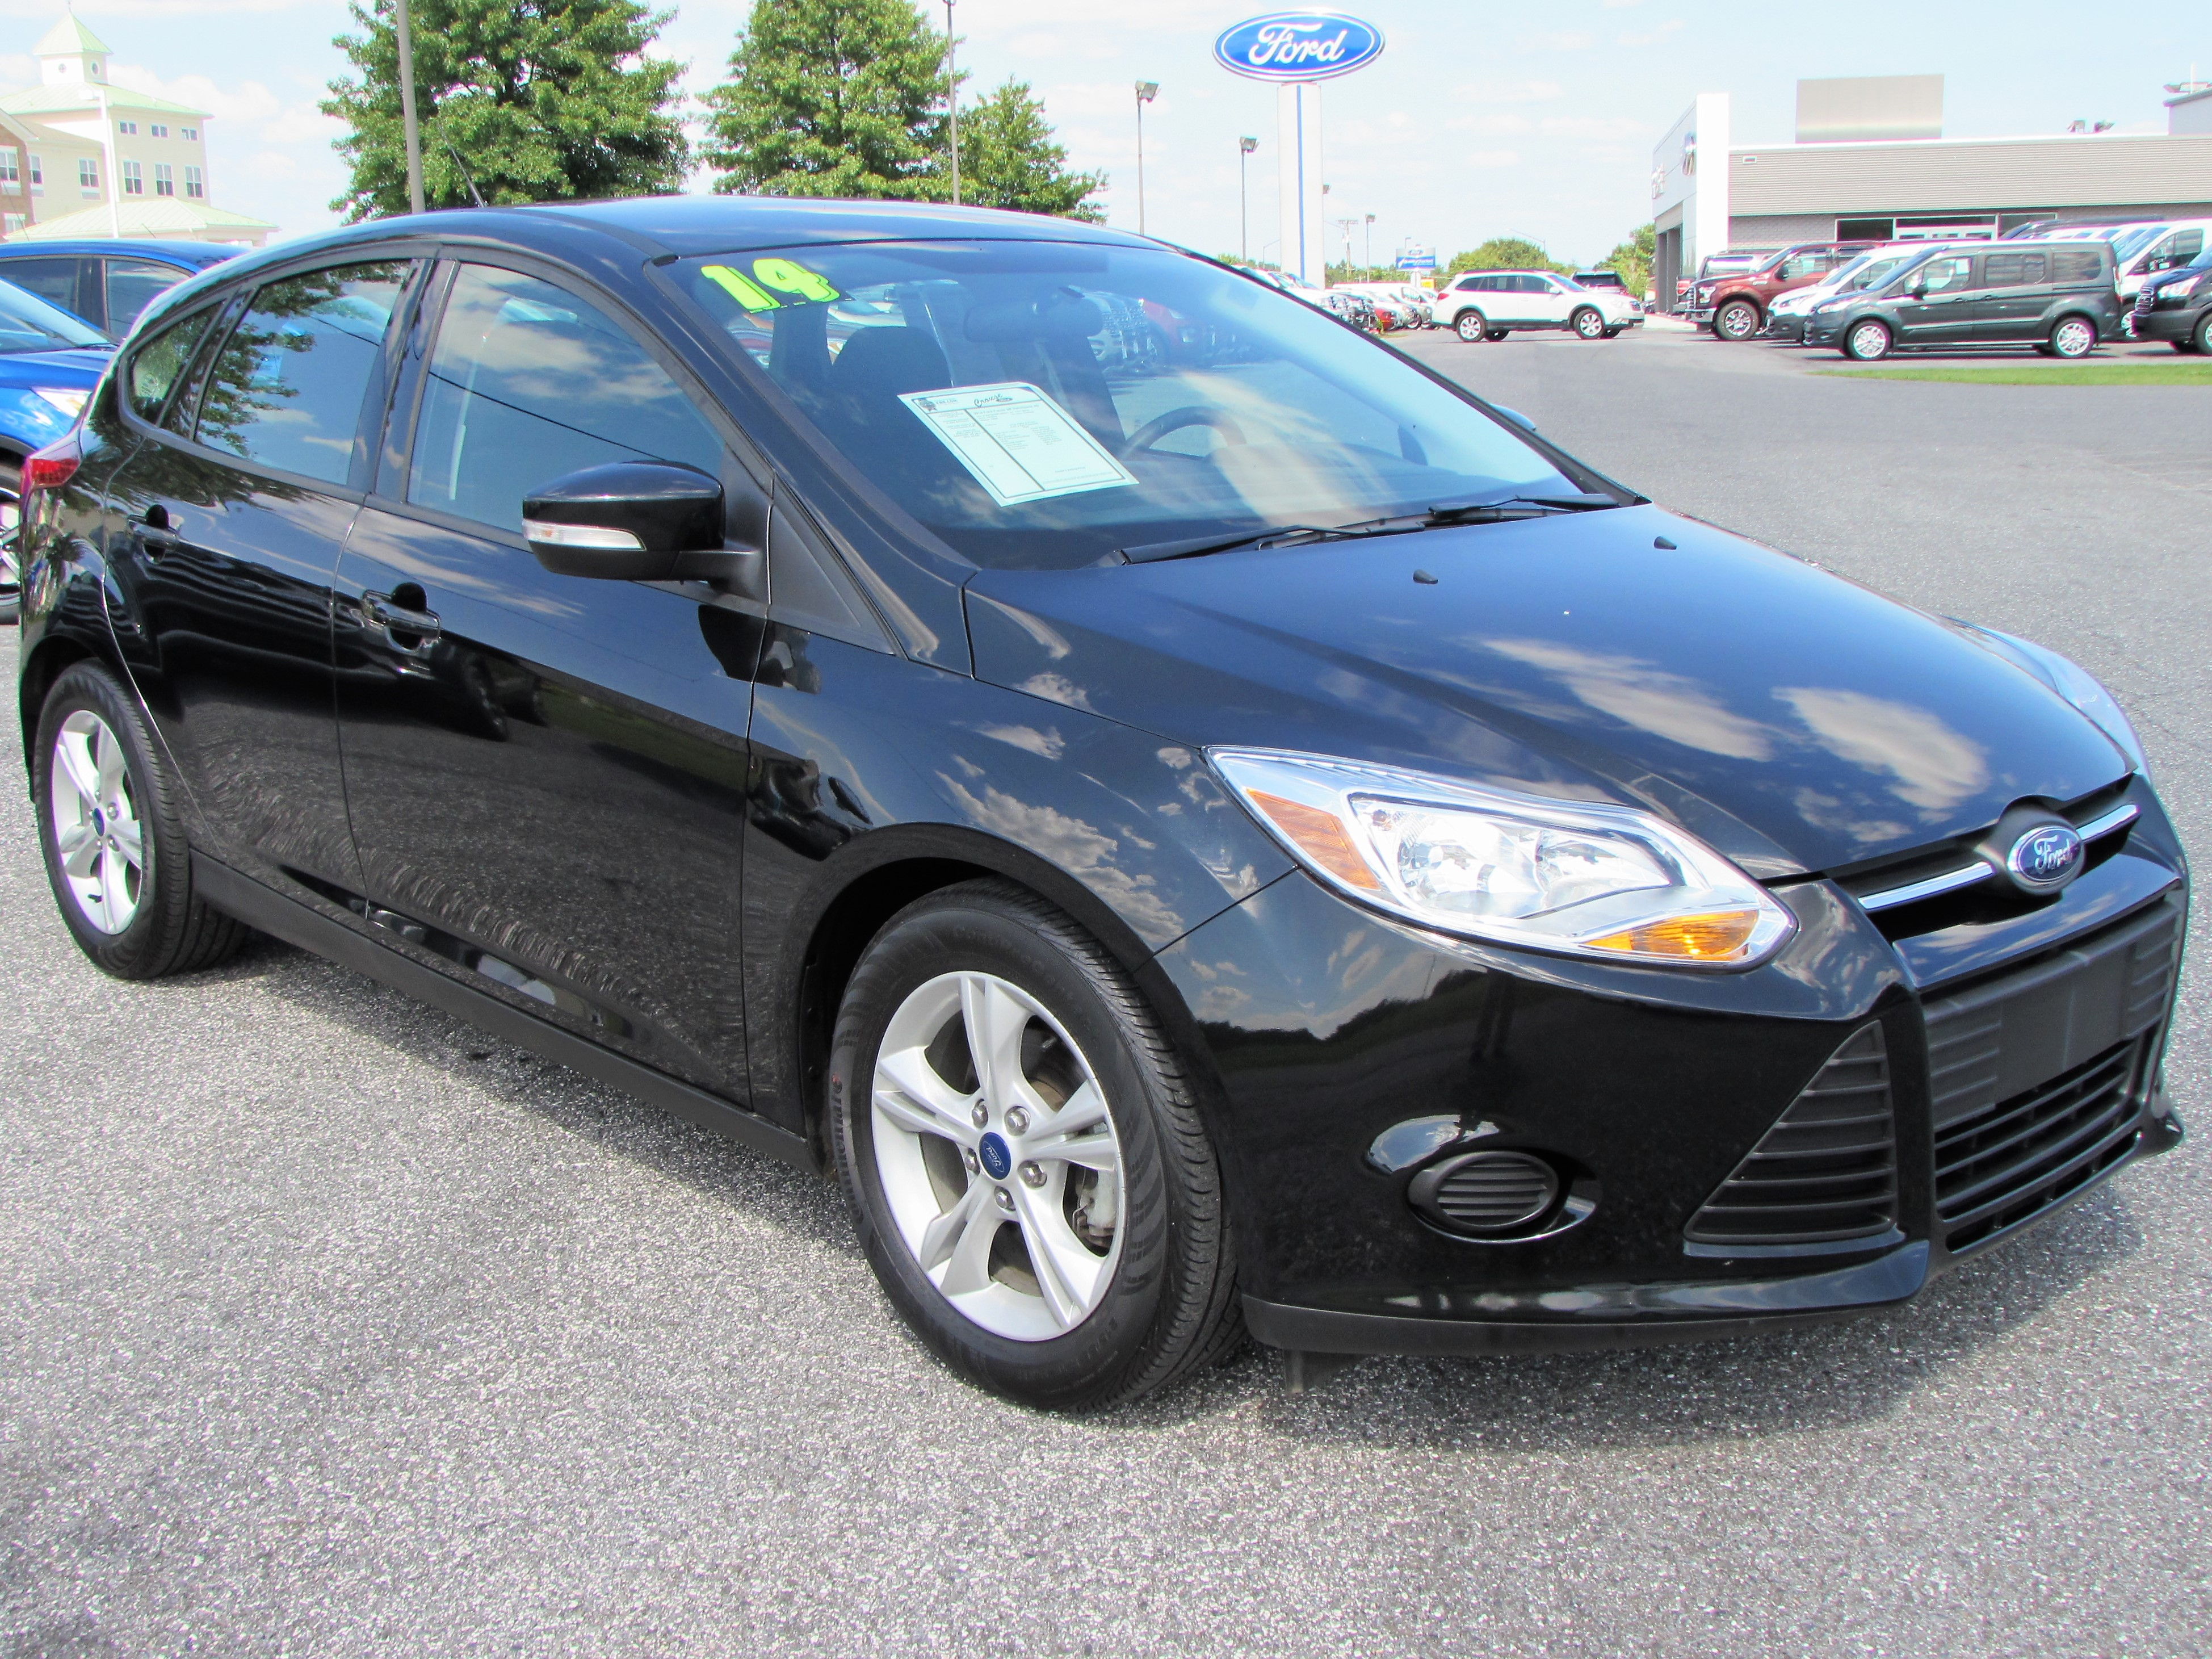 2014 Ford Focus SE Hatchback & Taneytown Crouse Ford Sales | New u0026 Used Ford Cars markmcfarlin.com